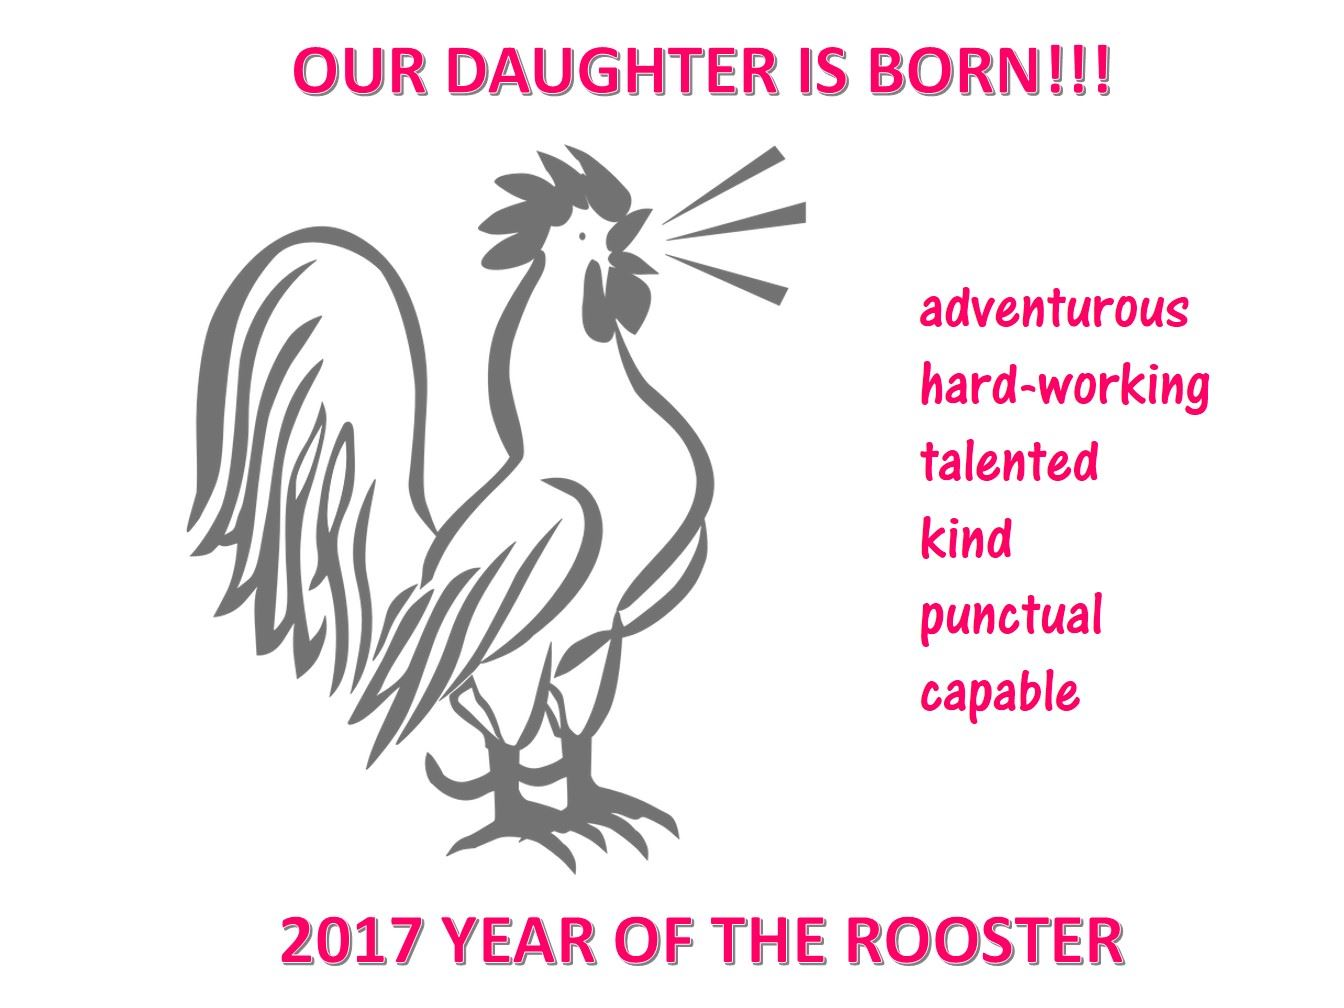 Free Daughter born Chinese year of rooster poster | Templates at ...